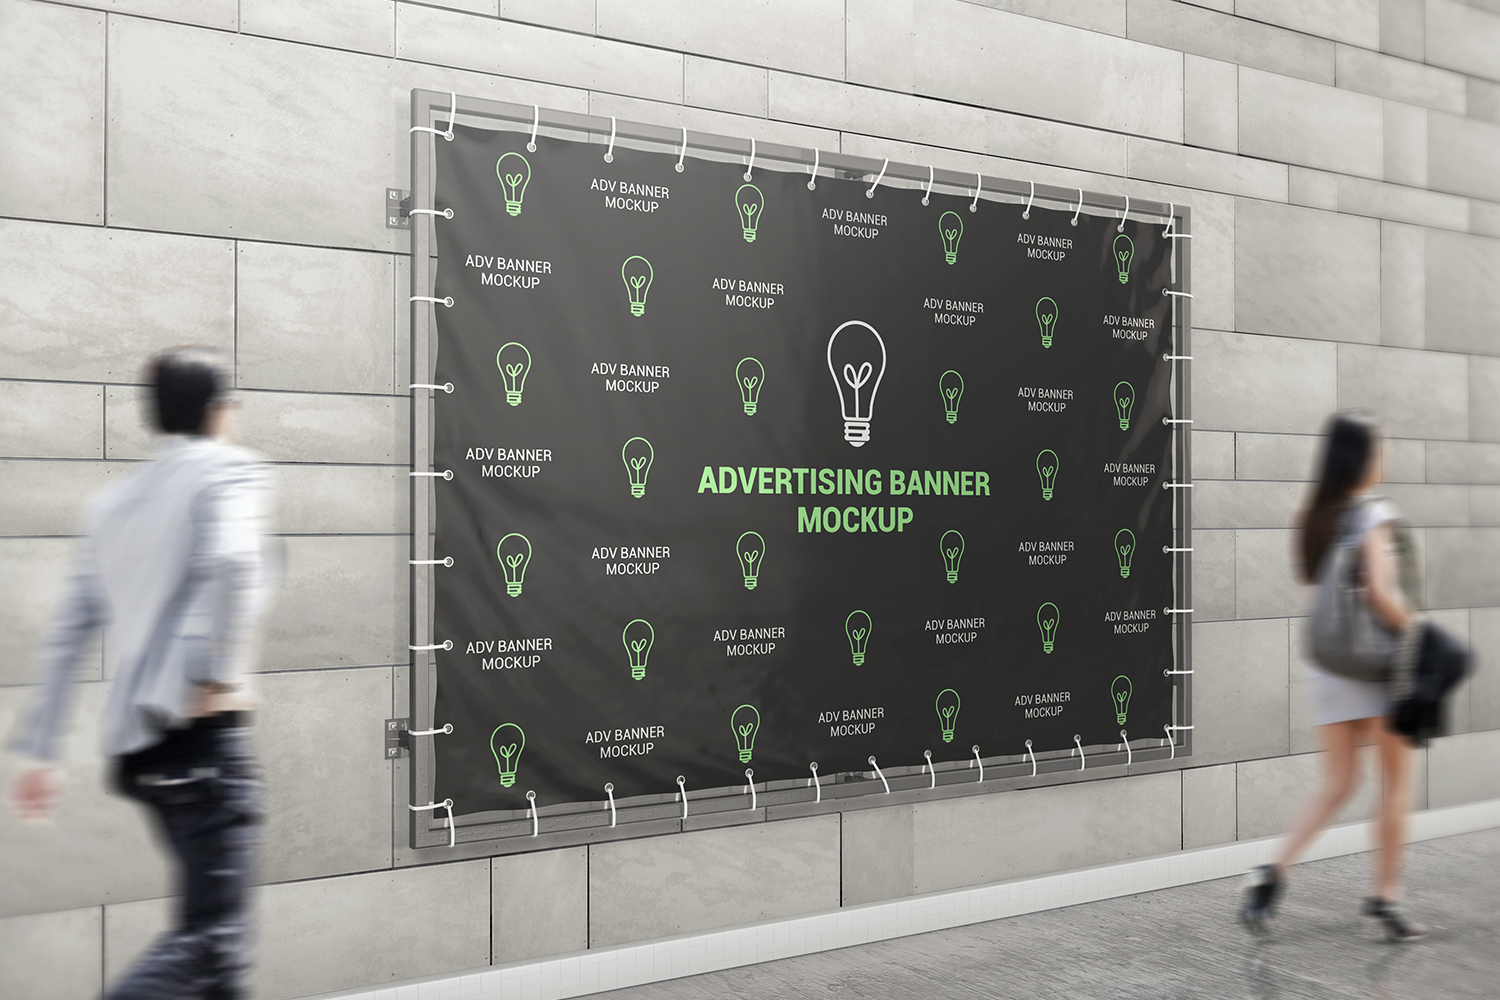 Advertising Banner Mockup example image 2